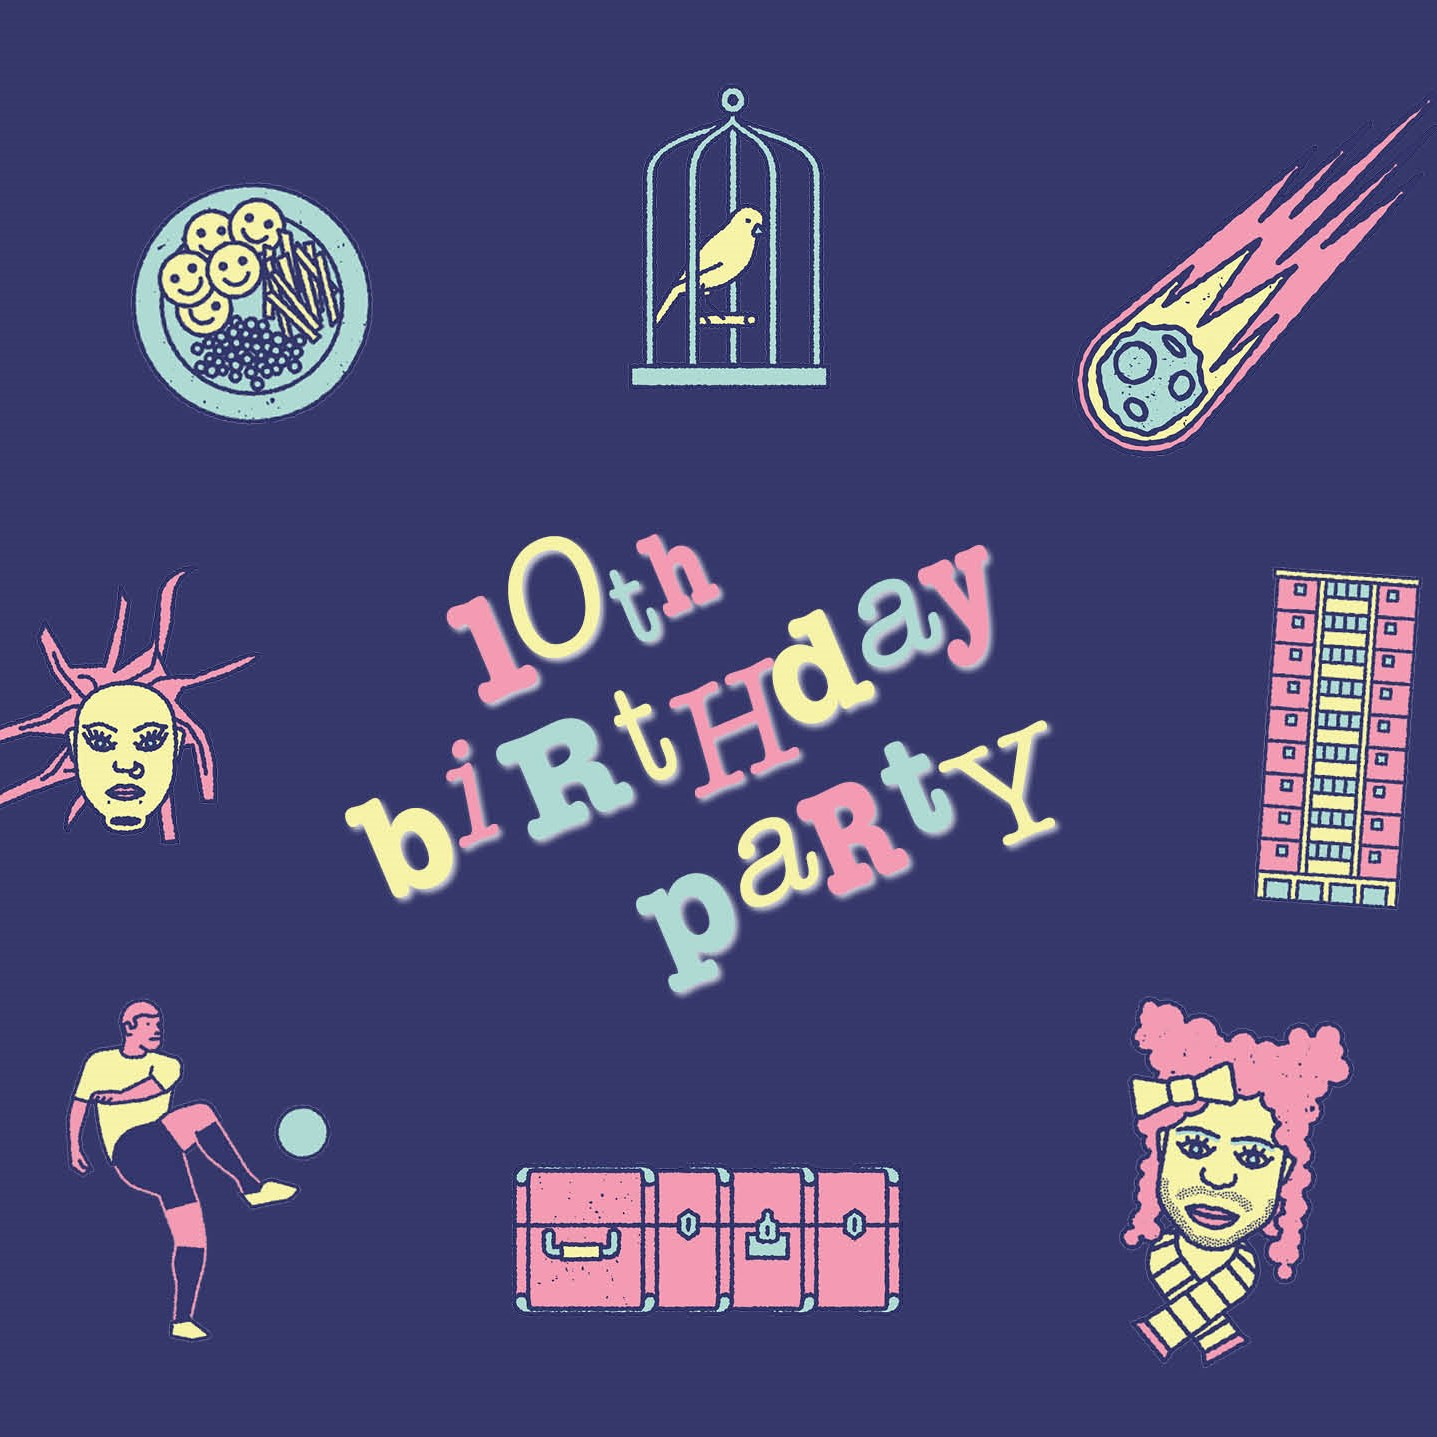 Illustrations of images from past Middle Child shows with text: 10th Birthday Party